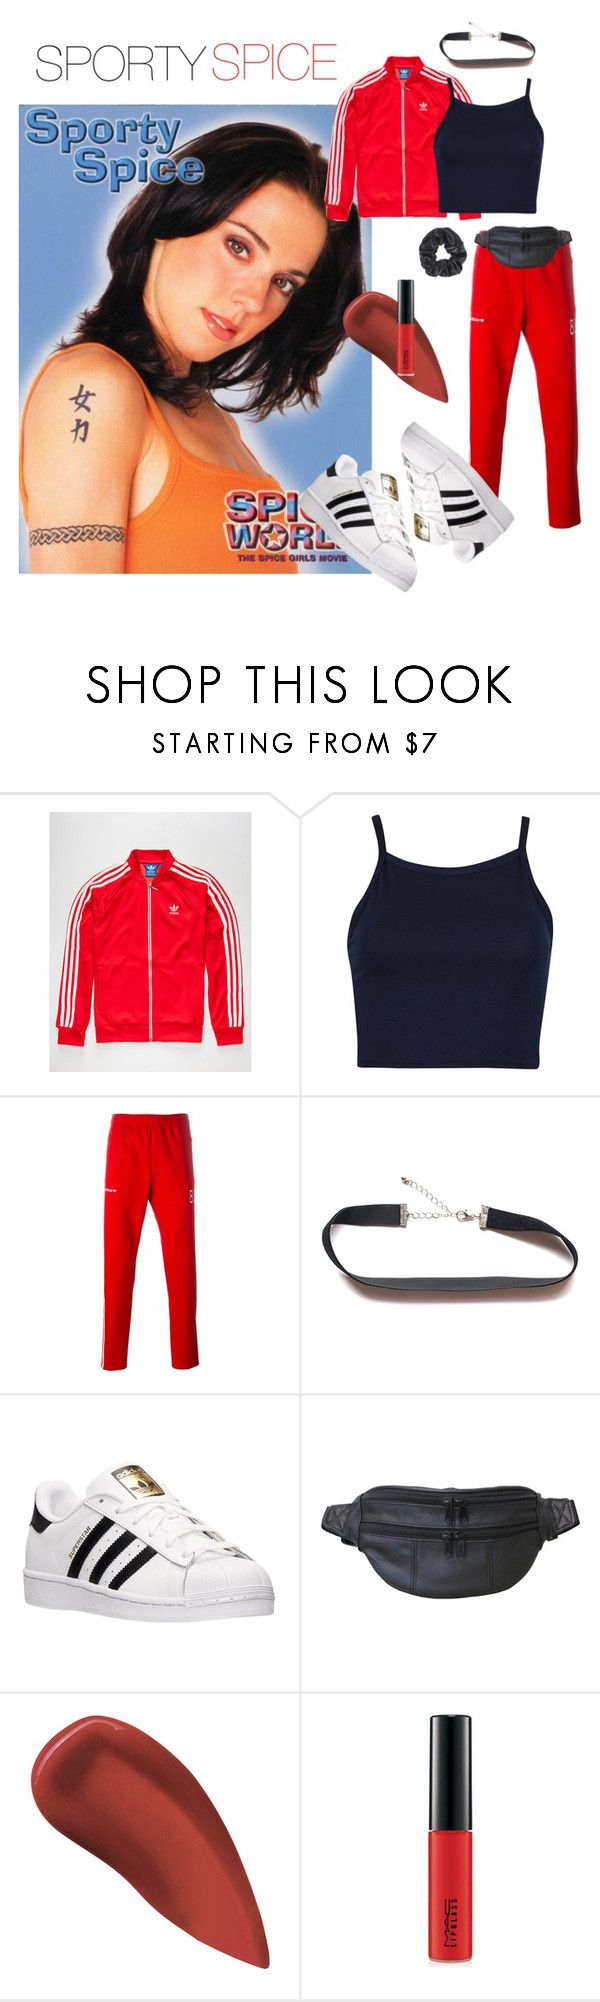 SPORTY SPICE HALLOWEEN COSTUME by a-le-mode on Polyvore featuring adidas, AmeriLeather, adidas Originals, Kevyn Aucoin, MAC Cosmetics and Halloween